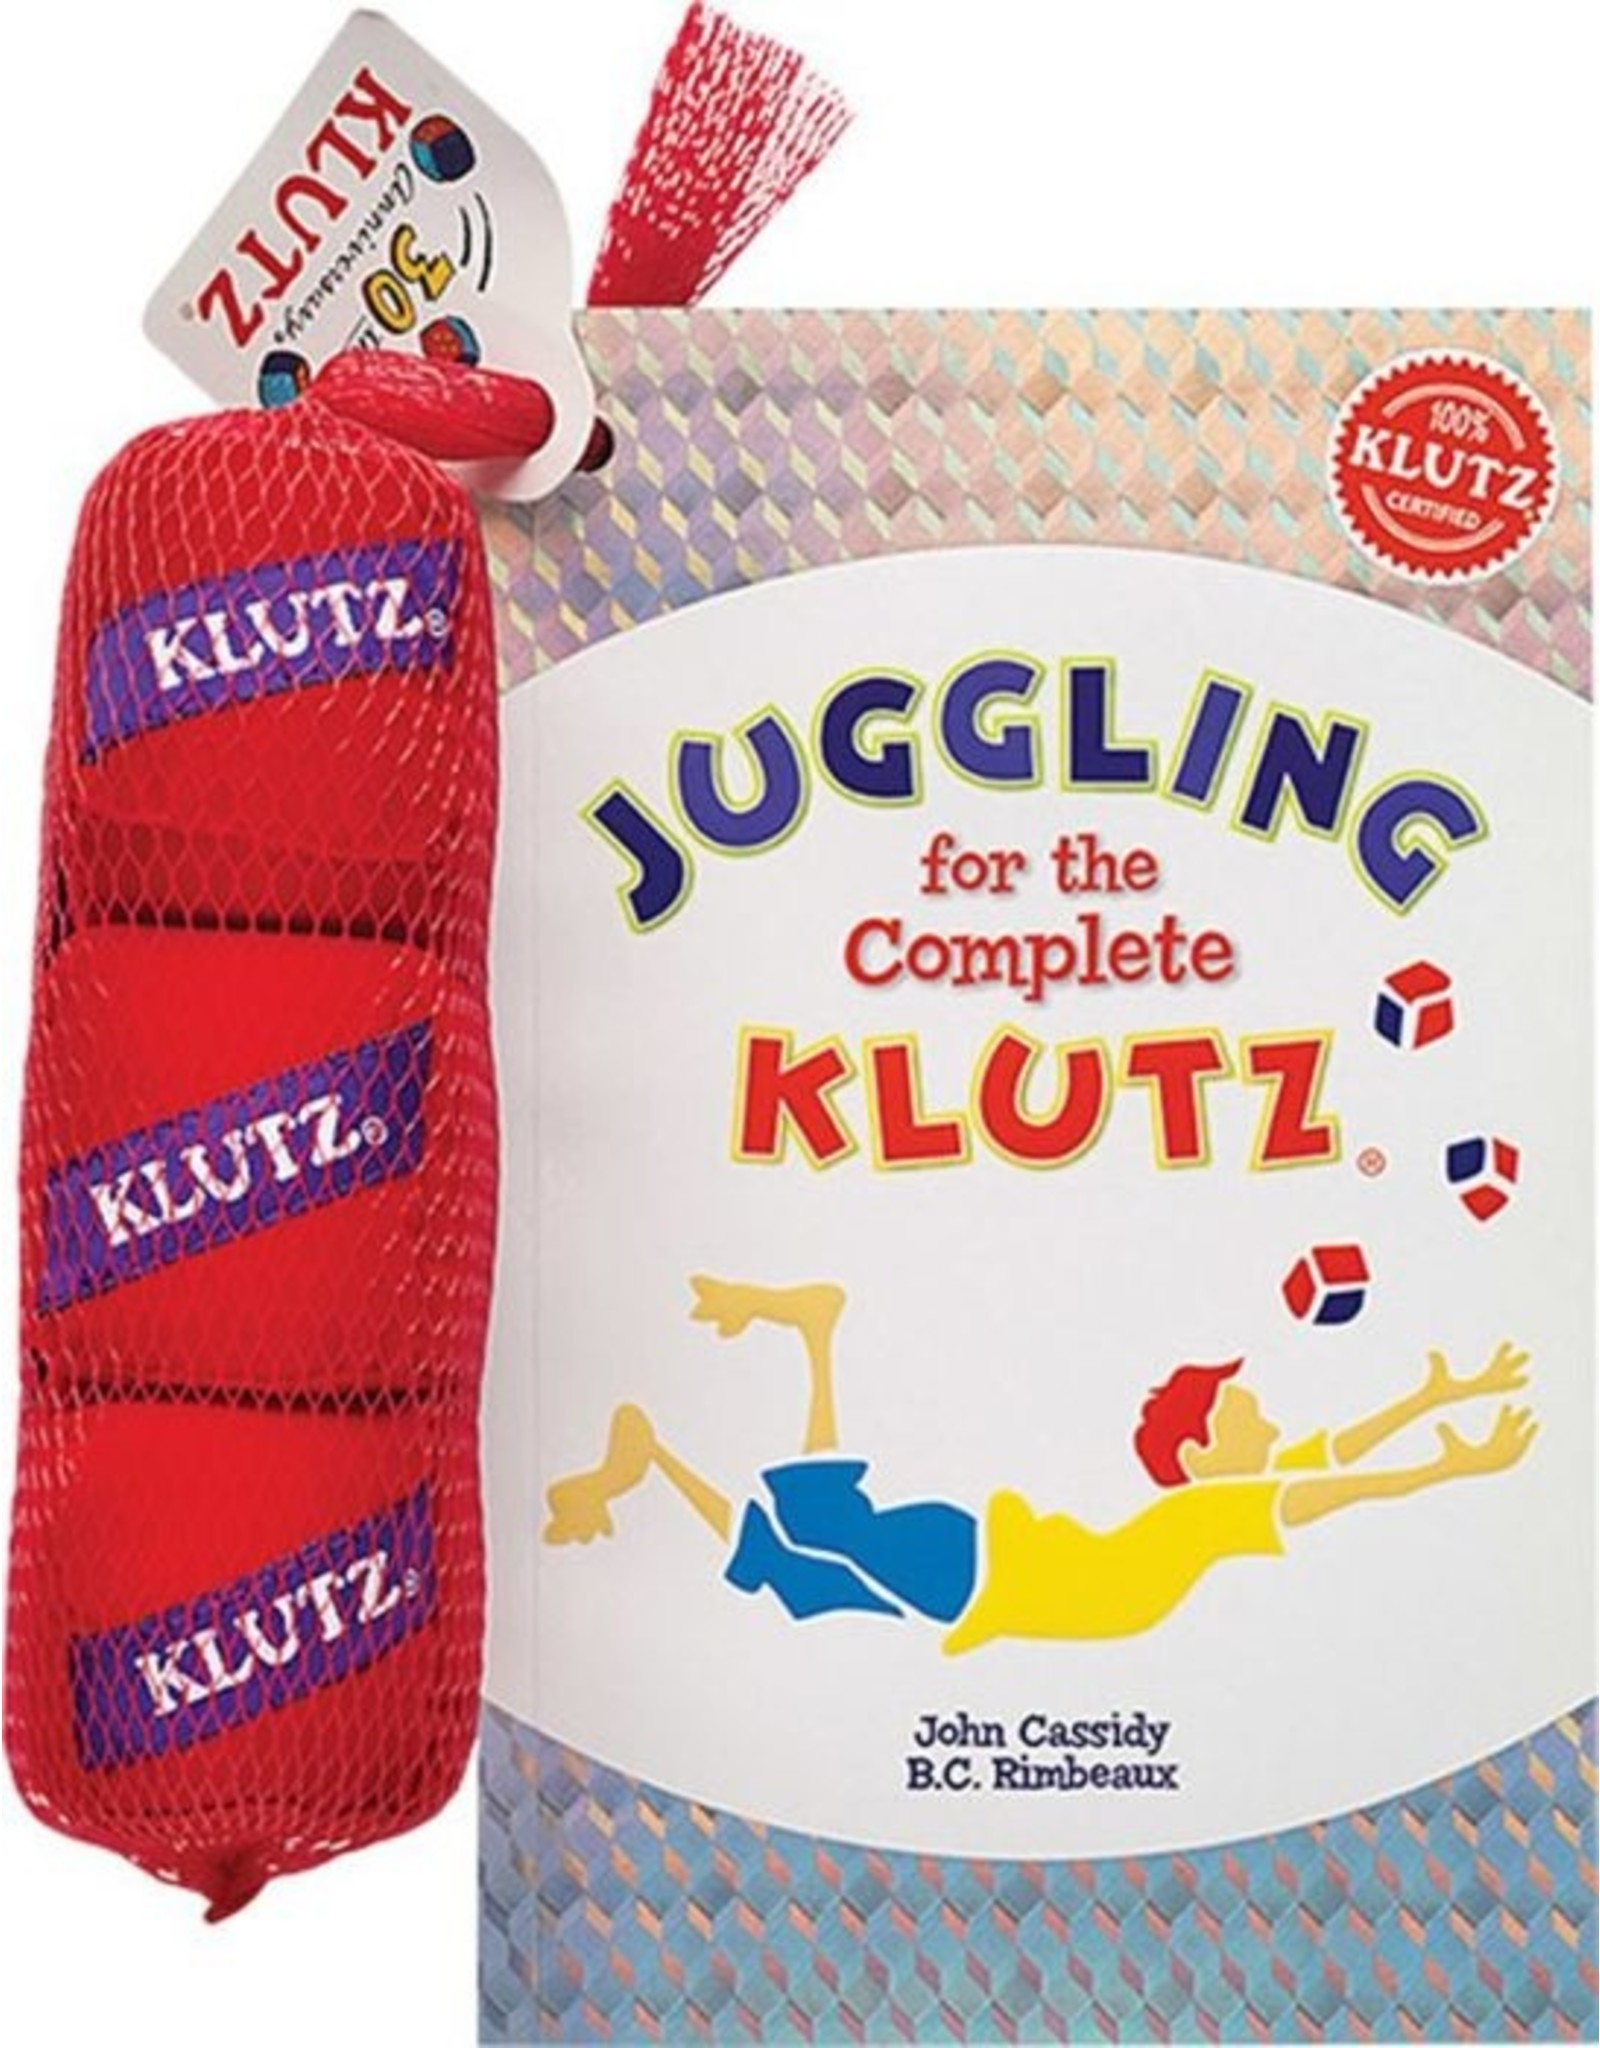 Klutz Juggling for the Complete Klutz